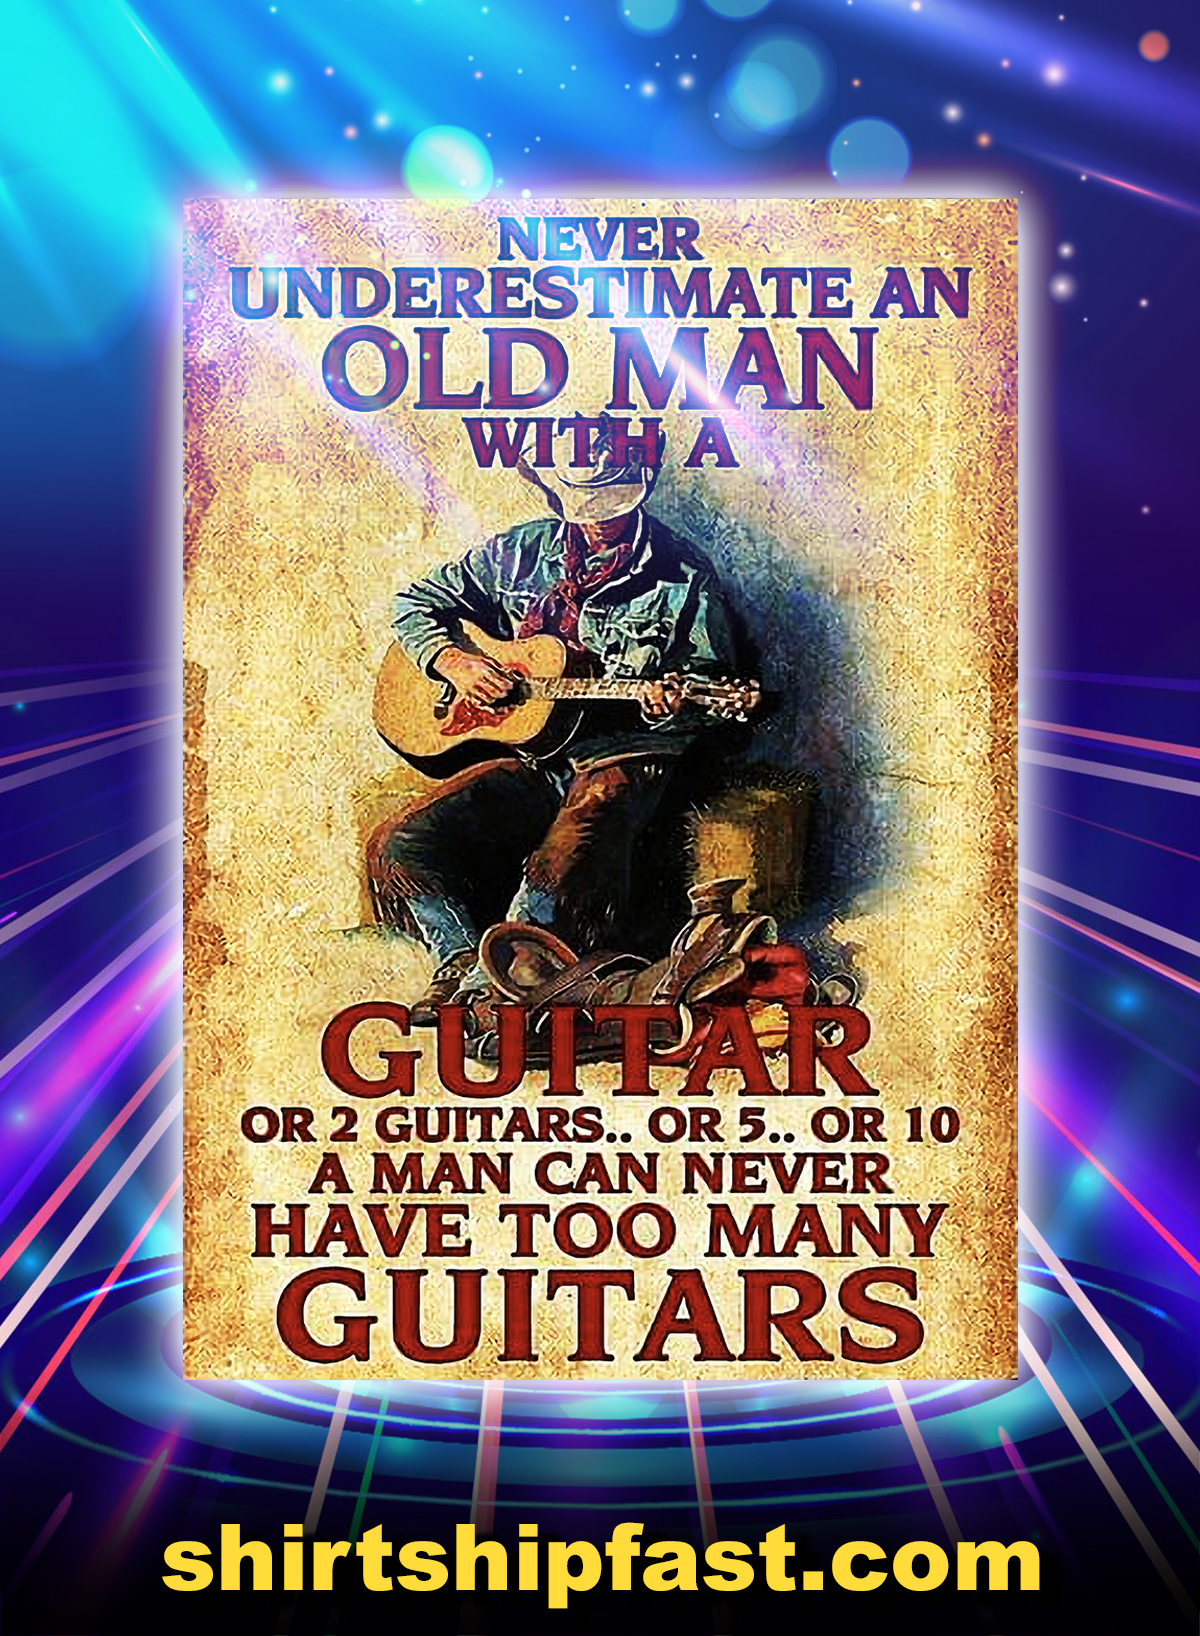 Never underestimate an old man with a guitar poster - A4